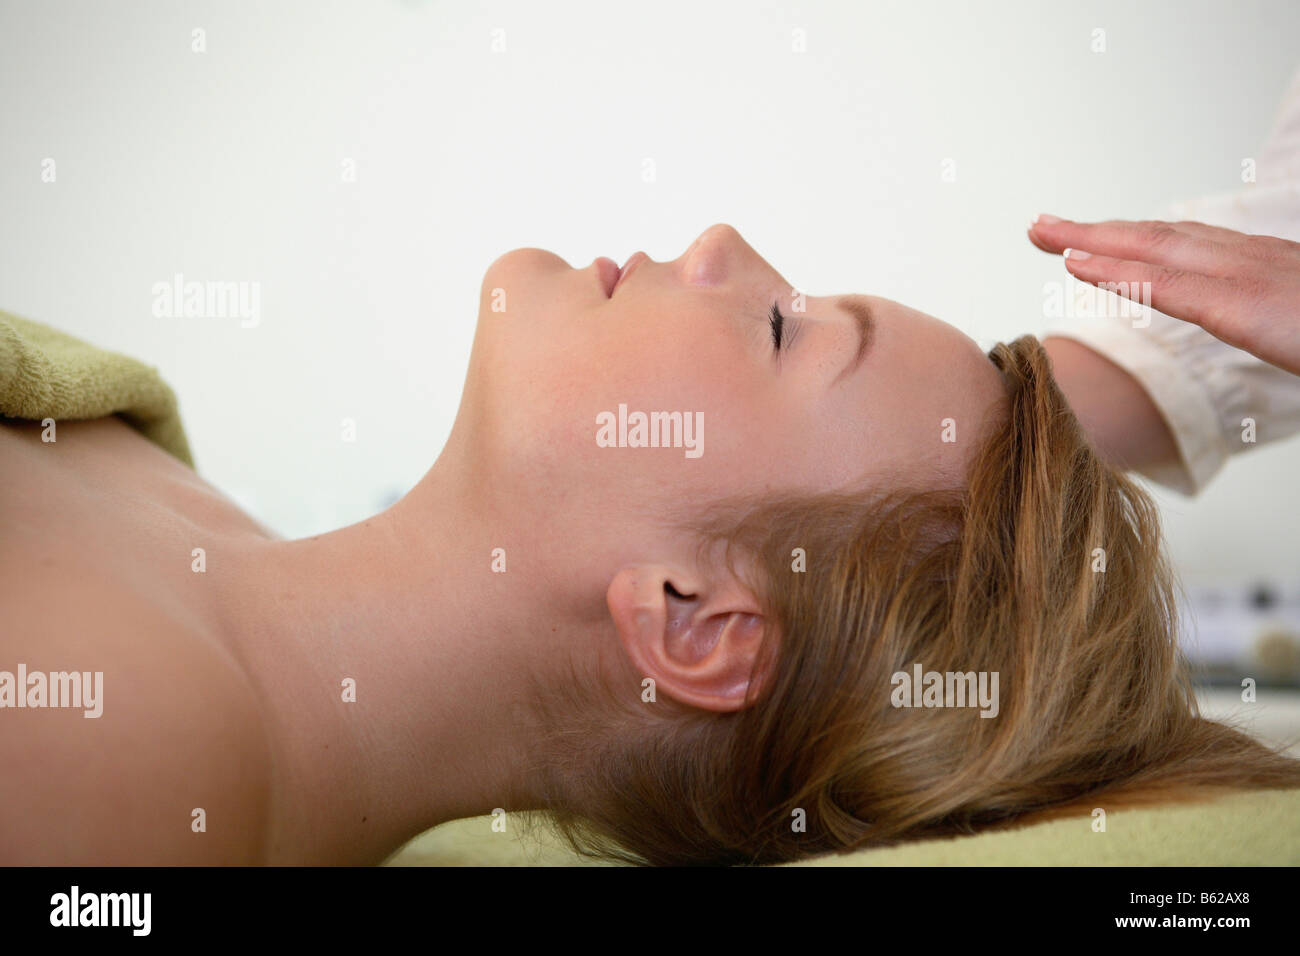 Girl in a beauty parlour before getting a facial - Stock Image